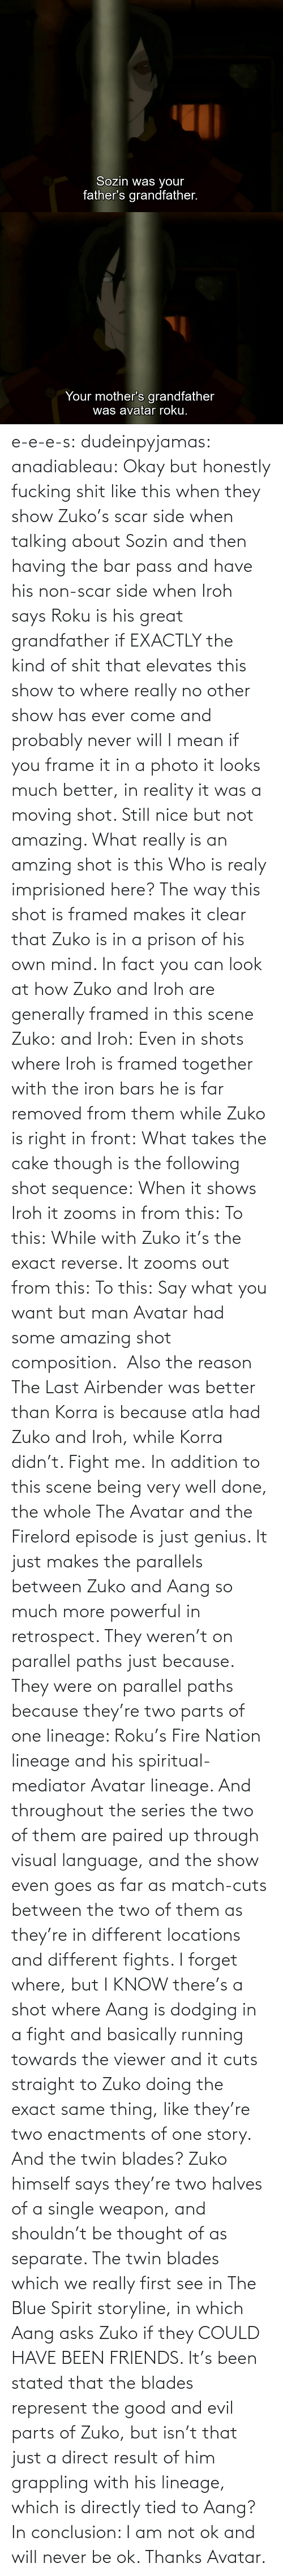 Fight: e-e-e-s: dudeinpyjamas:   anadiableau: Okay but honestly fucking shit like this when they show Zuko's scar side when talking about Sozin and then having the bar pass and have his non-scar side when Iroh says Roku is his great grandfather if EXACTLY the kind of shit that elevates this show to where really no other show has ever come and probably never will I mean if you frame it in a photo it looks much better, in reality it was a moving shot. Still nice but not amazing. What really is an amzing shot is this Who is realy imprisioned here? The way this shot is framed makes it clear that Zuko is in a prison of his own mind. In fact you can look at how Zuko and Iroh are generally framed in this scene Zuko: and Iroh: Even in shots where Iroh is framed together with the iron bars he is far removed from them while Zuko is right in front:  What takes the cake though is the following shot sequence: When it shows Iroh it zooms in from this: To this: While with Zuko it's the exact reverse. It zooms out from this: To this: Say what you want but man Avatar had some amazing shot composition.   Also the reason The Last Airbender was better than Korra is because atla had Zuko and Iroh, while Korra didn't. Fight me.    In addition to this scene being very well done, the whole The Avatar and the Firelord episode is just genius.  It just makes the parallels between Zuko and Aang so much more powerful in retrospect.  They weren't on parallel paths just because.  They were on parallel paths because they're two parts of one lineage: Roku's Fire Nation lineage and his spiritual-mediator Avatar lineage.  And throughout the series the two of them are paired up through visual language, and the show even goes as far as match-cuts between the two of them as they're in different locations and different fights.  I forget where, but I KNOW there's a shot where Aang is dodging in a fight and basically running towards the viewer and it cuts straight to Zuko doing the exact same thing, like they're two enactments of one story.   And the twin blades?  Zuko himself says they're two halves of a single weapon, and shouldn't be thought of as separate.  The twin blades which we really first see in The Blue Spirit storyline, in which Aang asks Zuko if they COULD HAVE BEEN FRIENDS.  It's been stated that the blades represent the good and evil parts of Zuko, but isn't that just a direct result of him grappling with his lineage, which is directly tied to Aang? In conclusion: I am not ok and will never be ok.  Thanks Avatar.